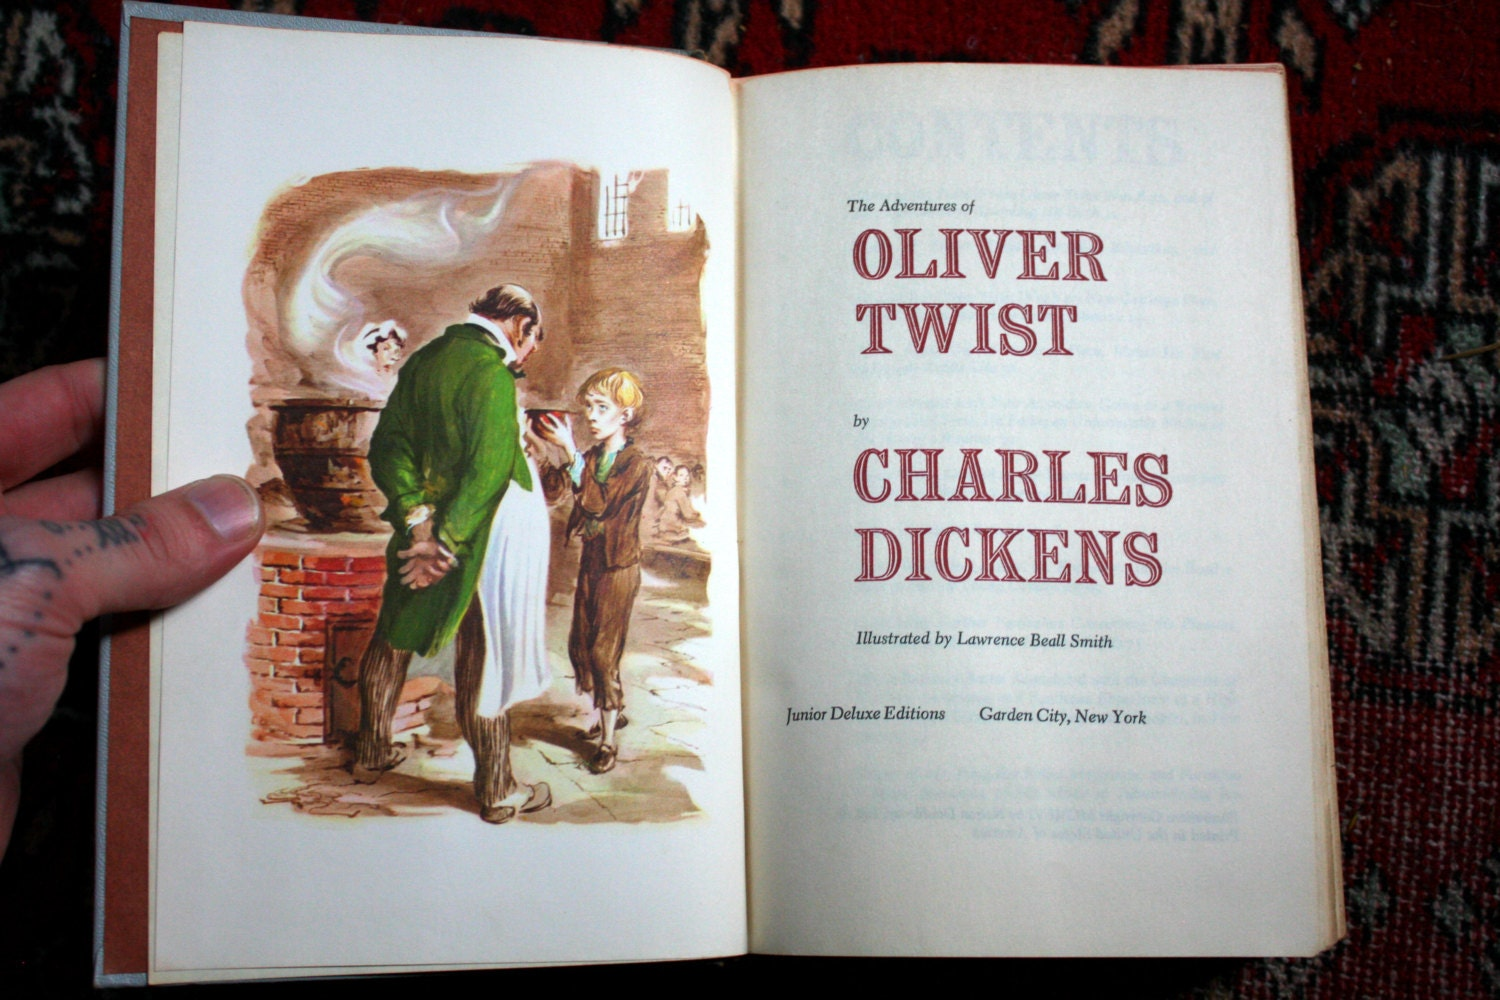 essay on charles dickens oliver twist Oliver twist by charles dickens oliver twist is born in a workhouse in 1830s england his mother, whose name no one knows, is found on the street and dies.